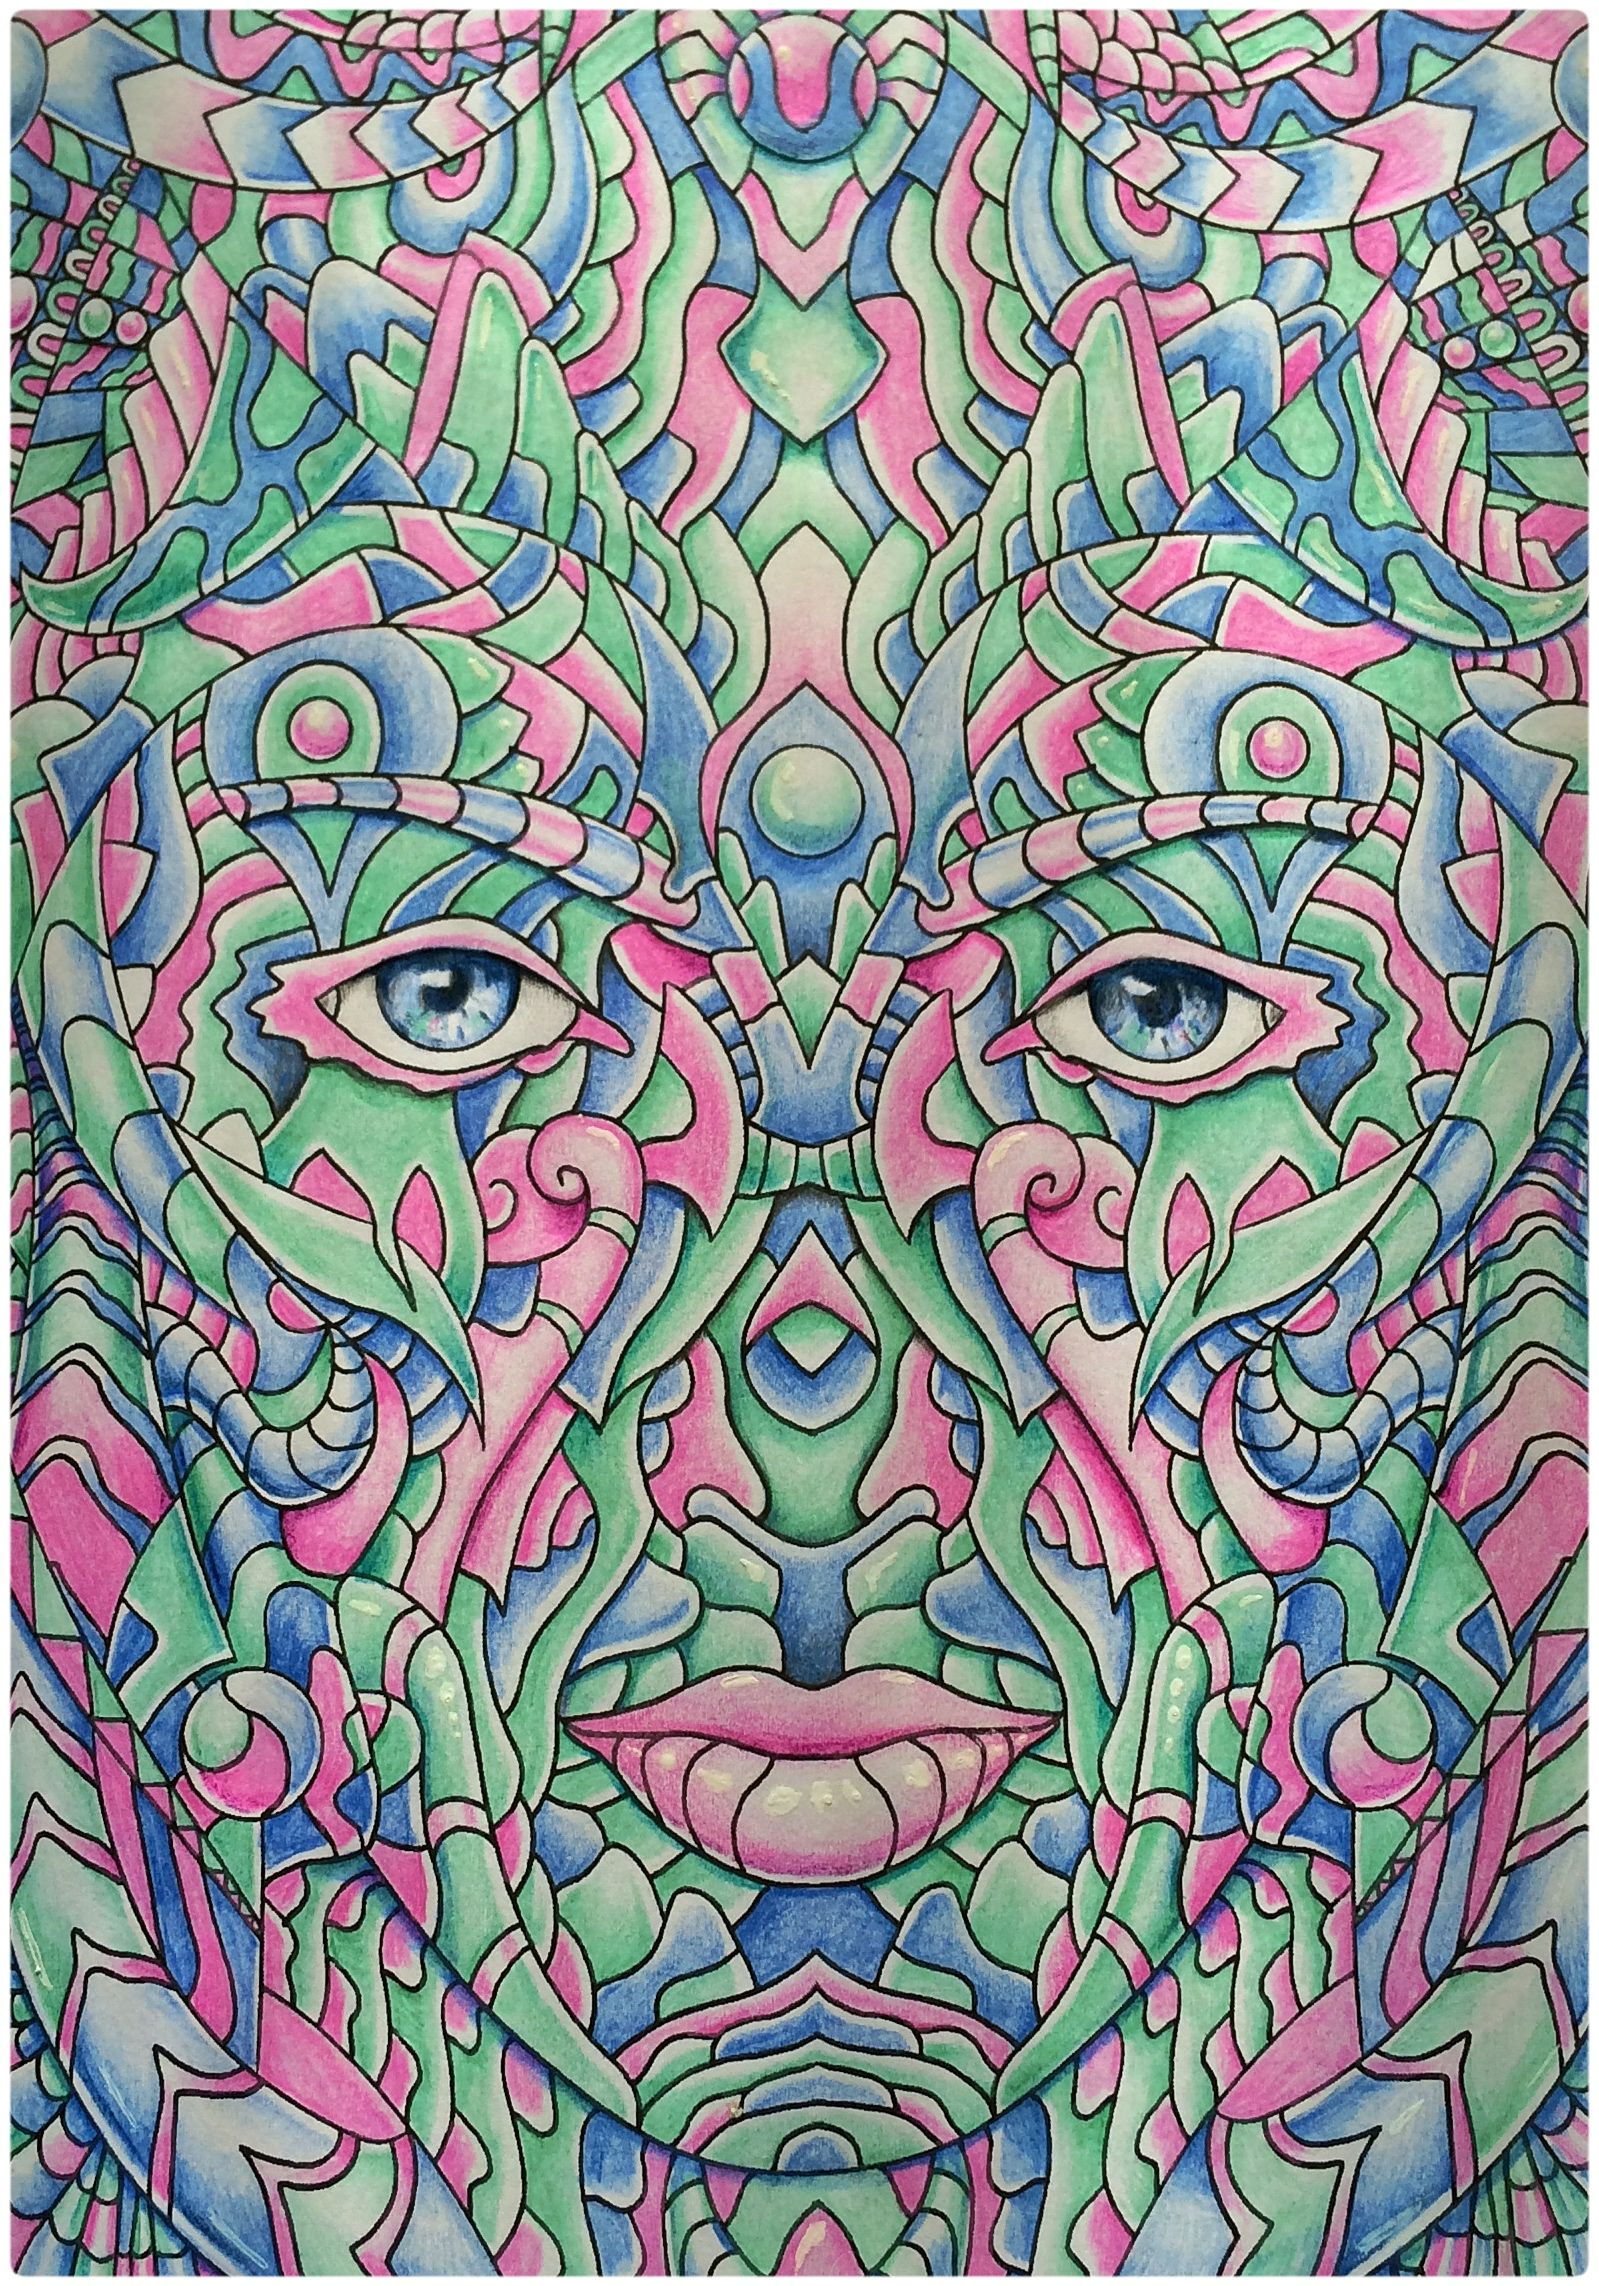 From High Visions Psychedelic Coloring Book 2 available on ...